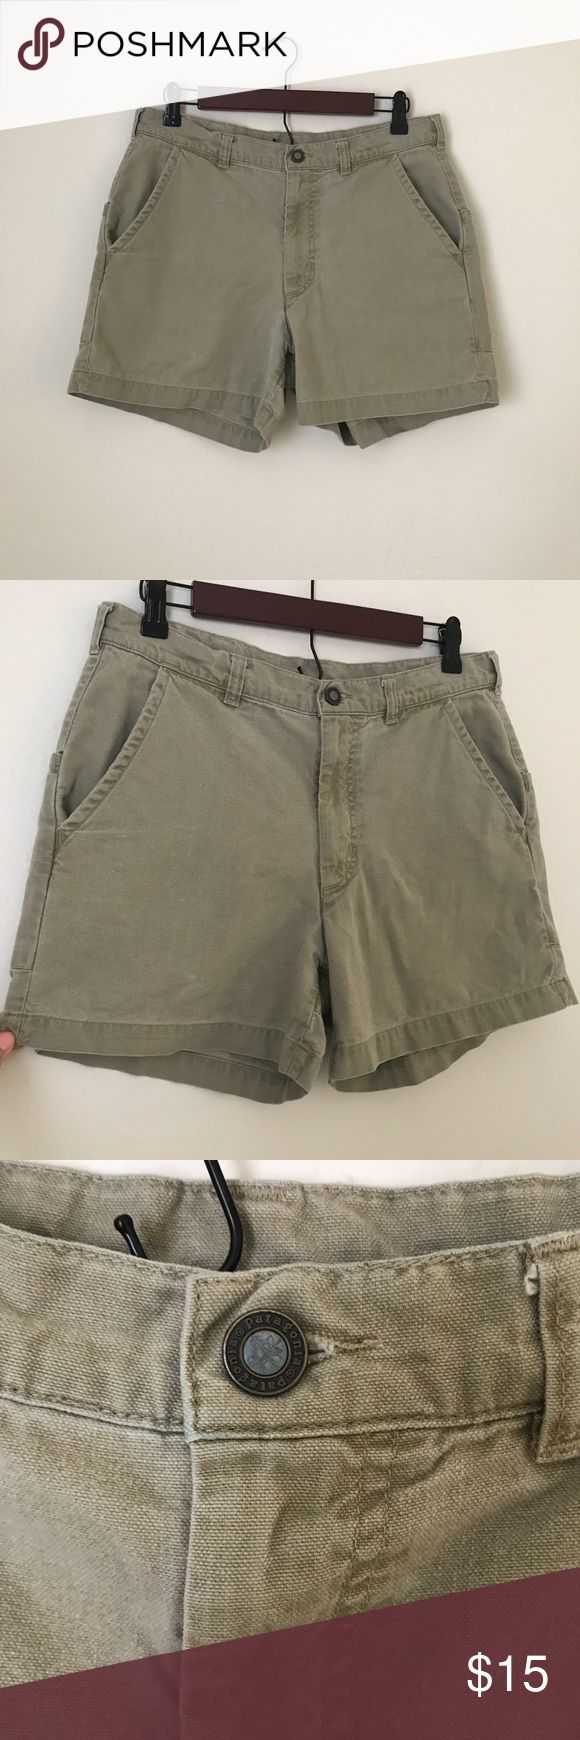 """Patagonia Men's Khaki Shorts 100% organic cotton Machine wash Only """"flaw"""" is the size written on inside Patagonia Shorts"""